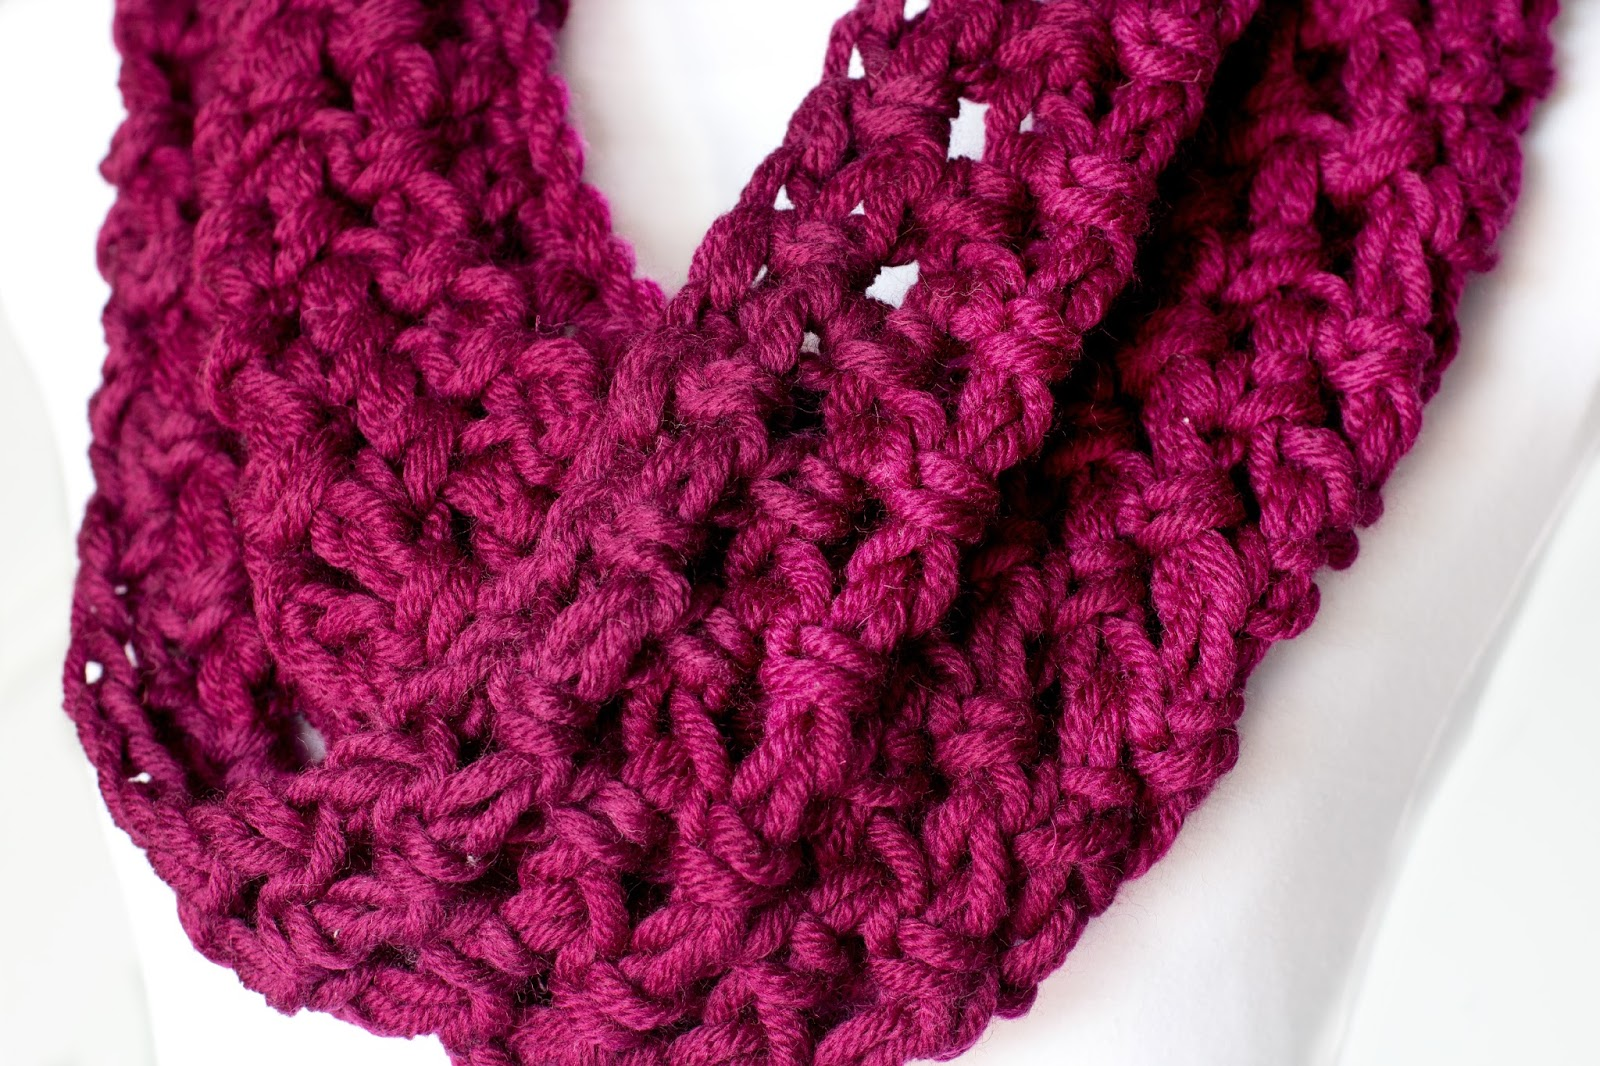 Crochet Stitches For Super Bulky Yarn : ... Honey Craft, Crochet, Create: Basic Chunky Cowl Crochet Pattern